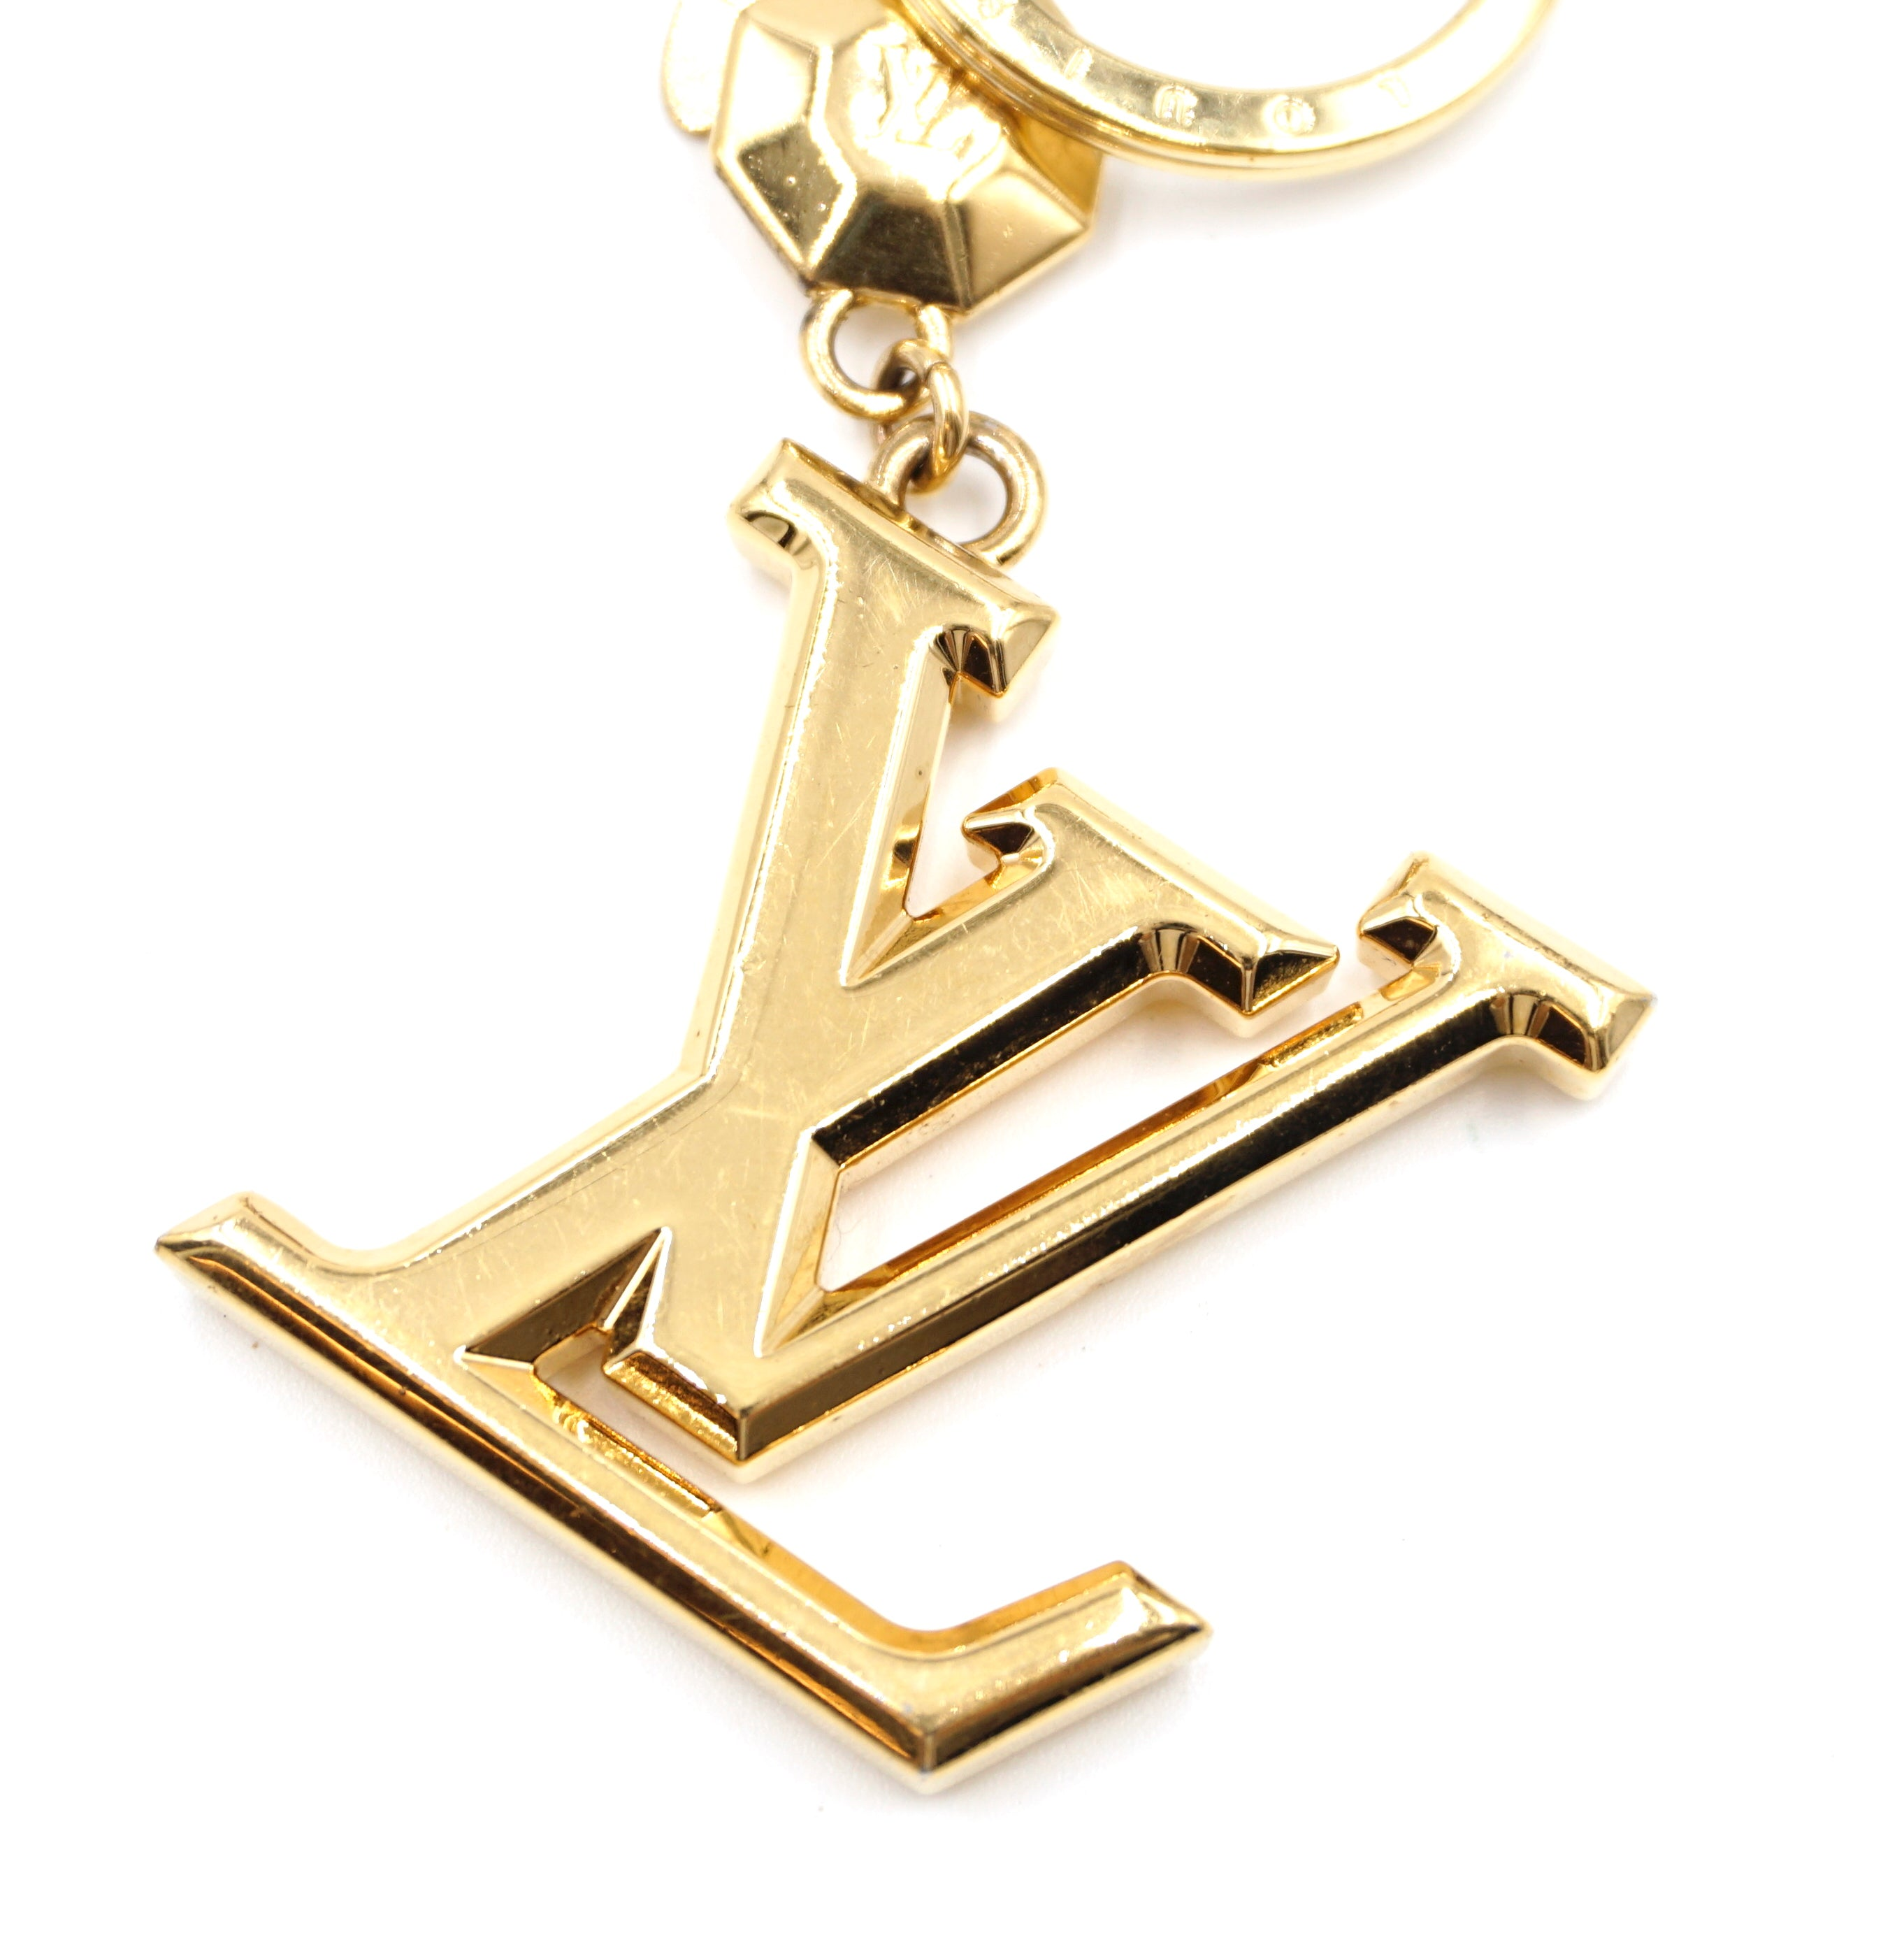 Louis Vuitton Gold Signature LV Key Ring Charm